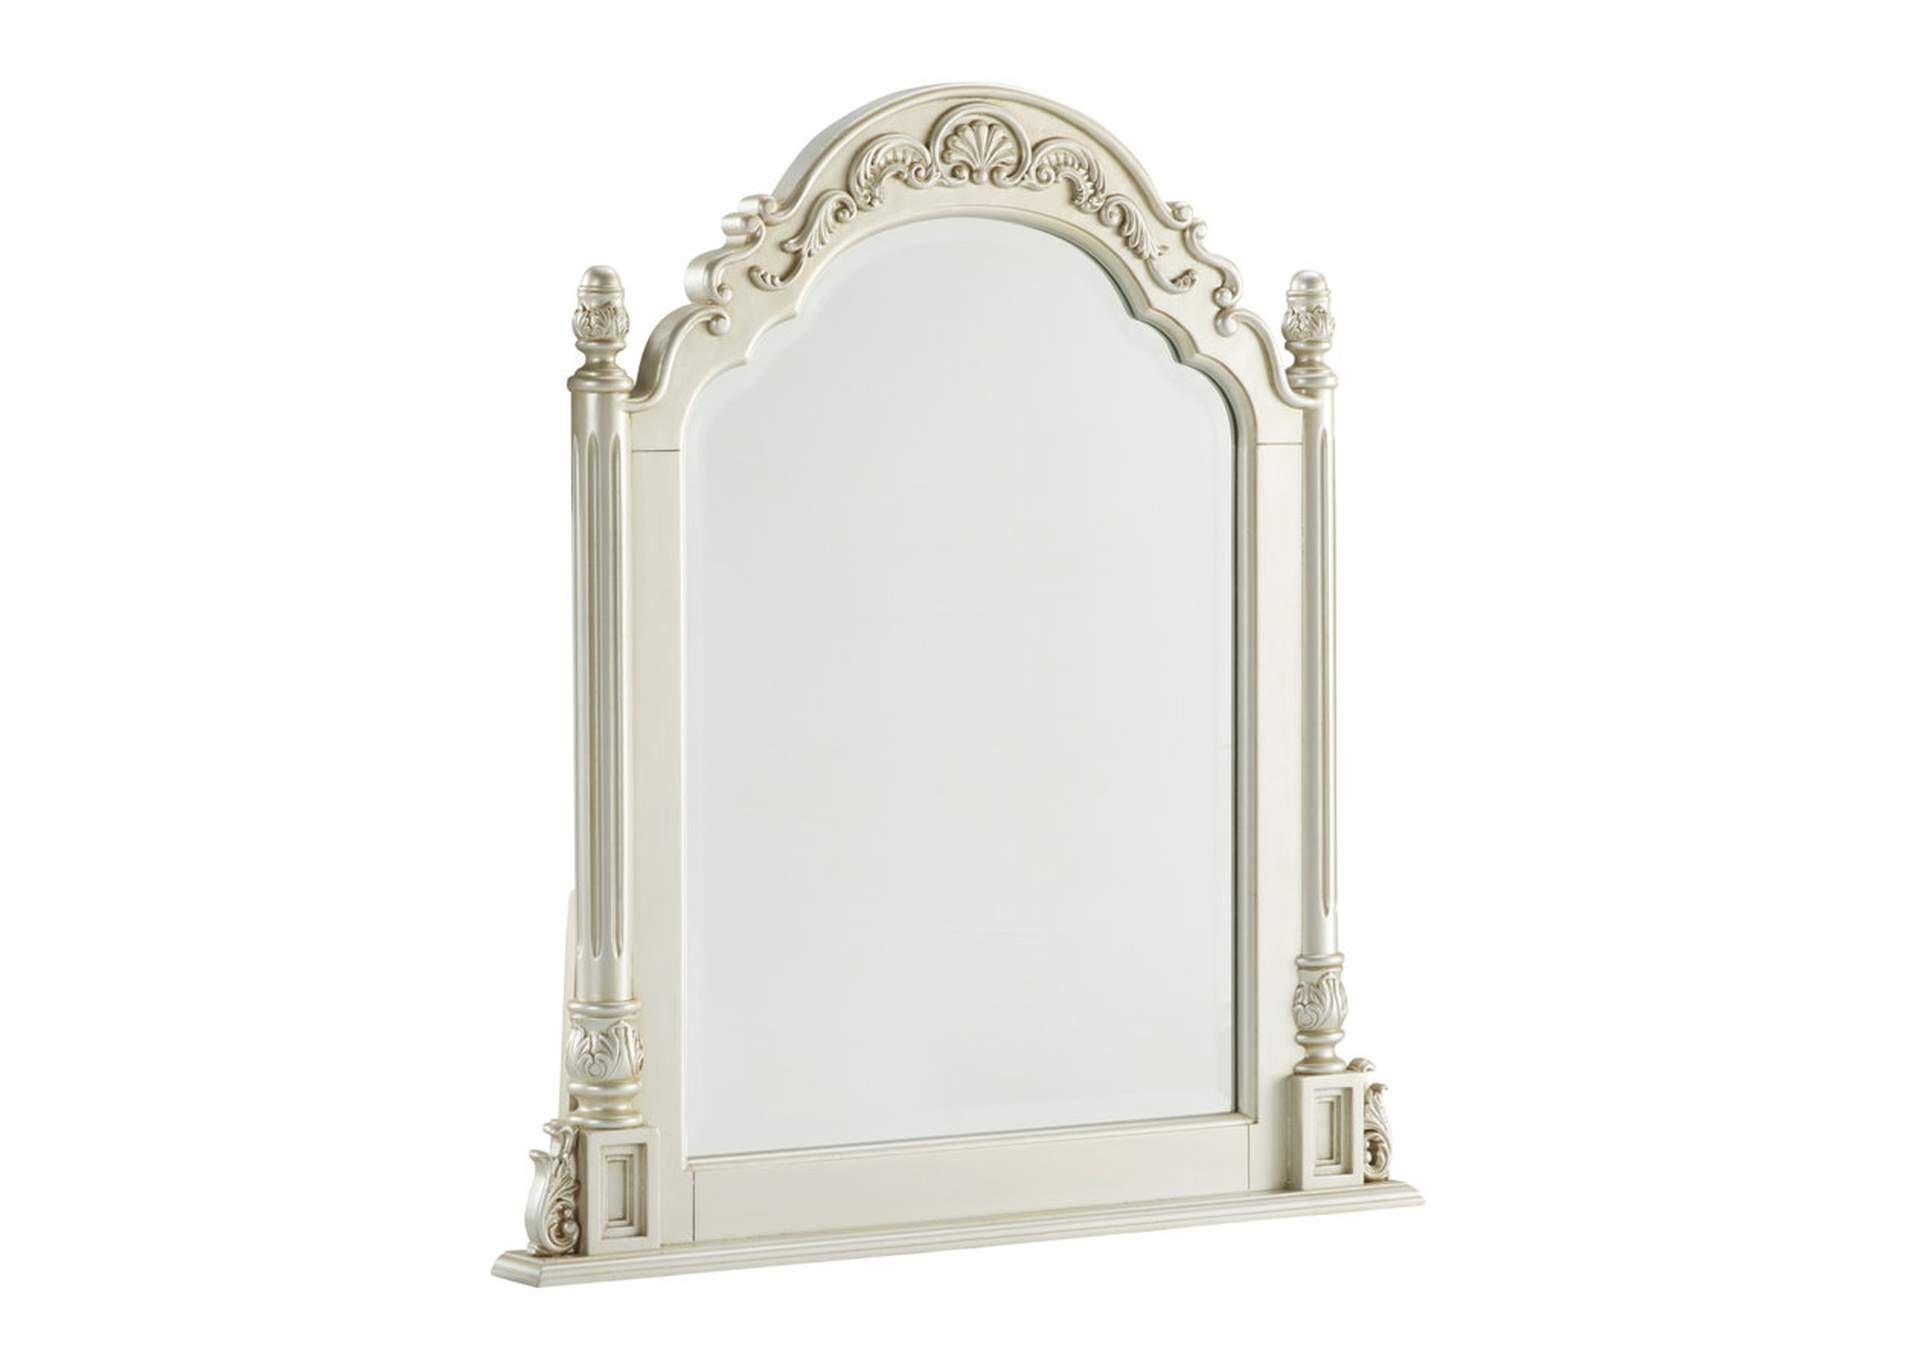 Cassimore Pearl Silver Vanity Mirror,ABF Signature Design by Ashley